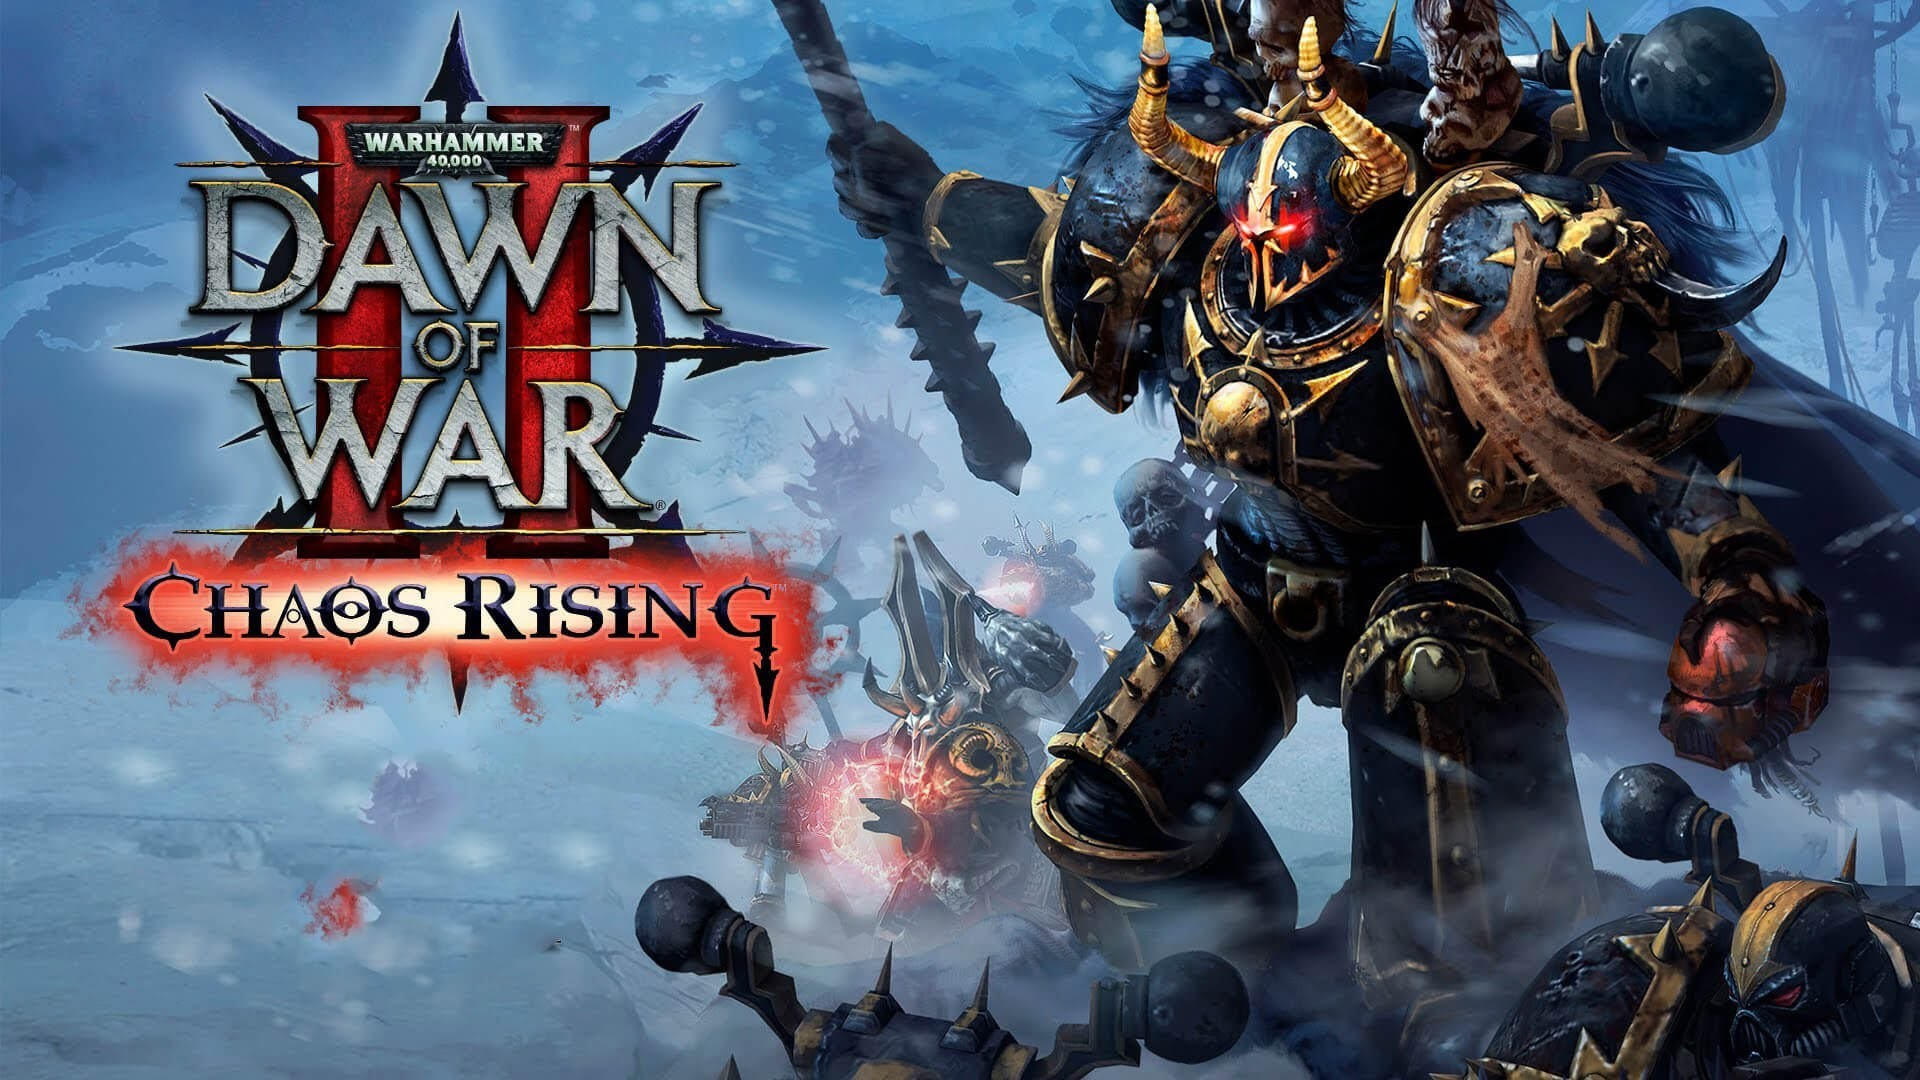 1920x1080 Let's Play Warhammer 40,000: Dawn of War II - Chaos Rising [Part 1] - Chaos